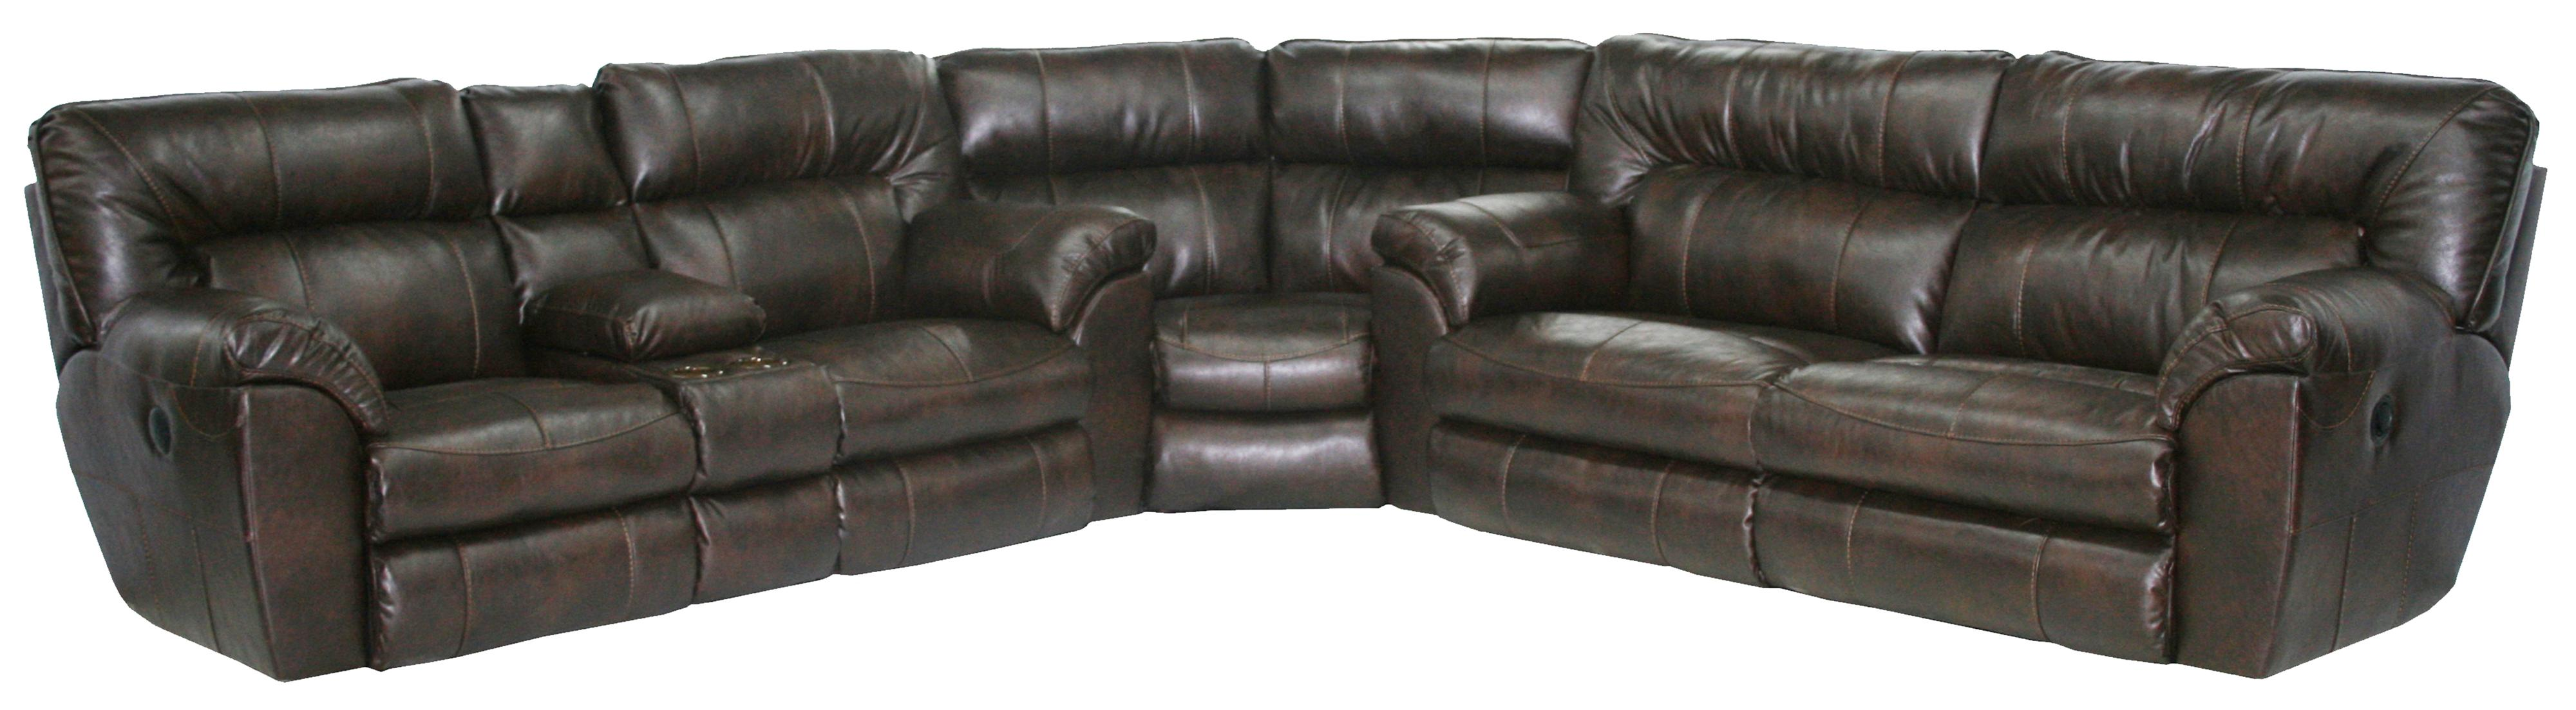 Catnapper MAVERICK Power Reclining Sectional with Left Console - Item Number: 64049+8+1 1223-29 3023-29